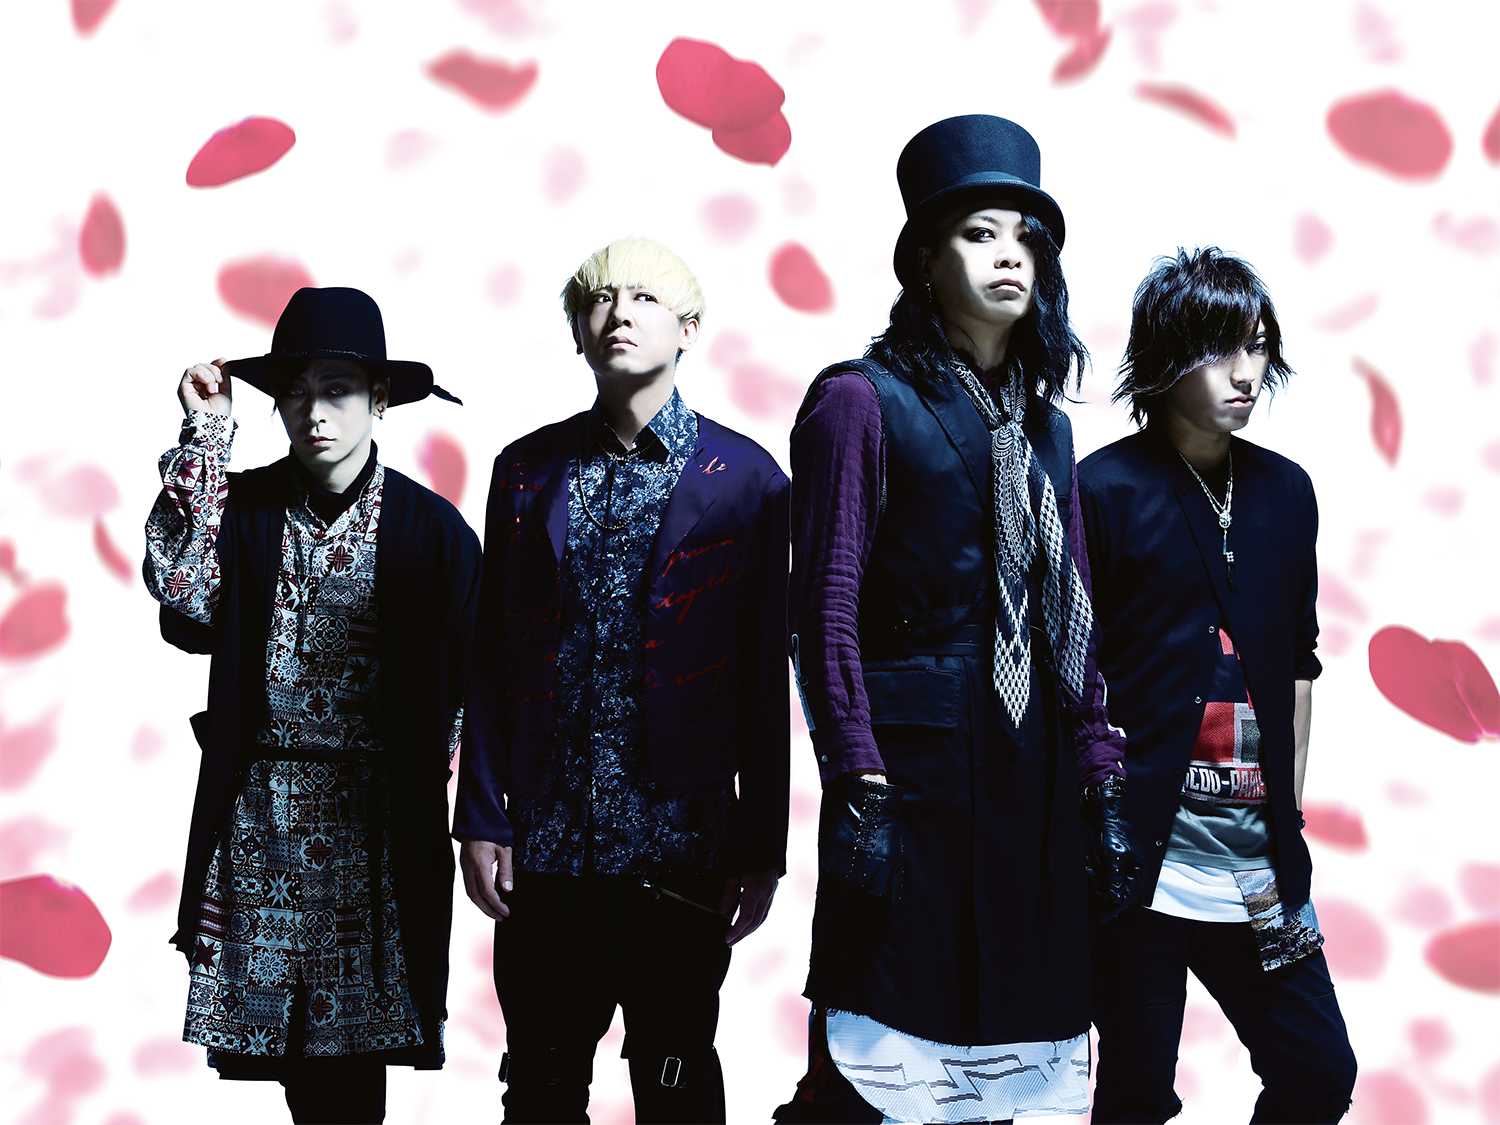 JRock247-MUCC-Tribute-Album-TRIBUTE-OF-MUCC-en-Review-1